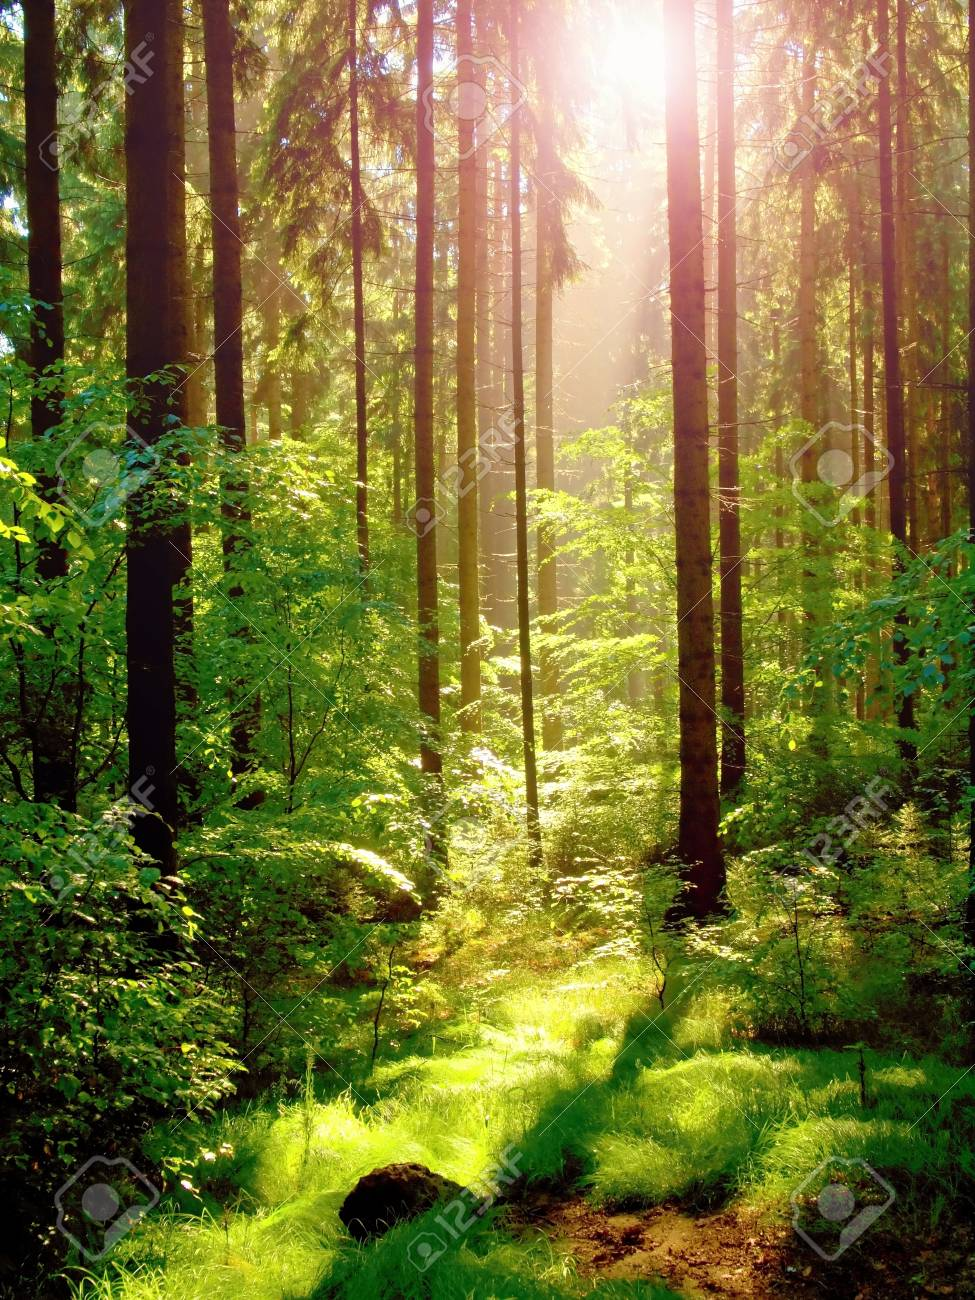 Spring sunset in green forest - 47642916